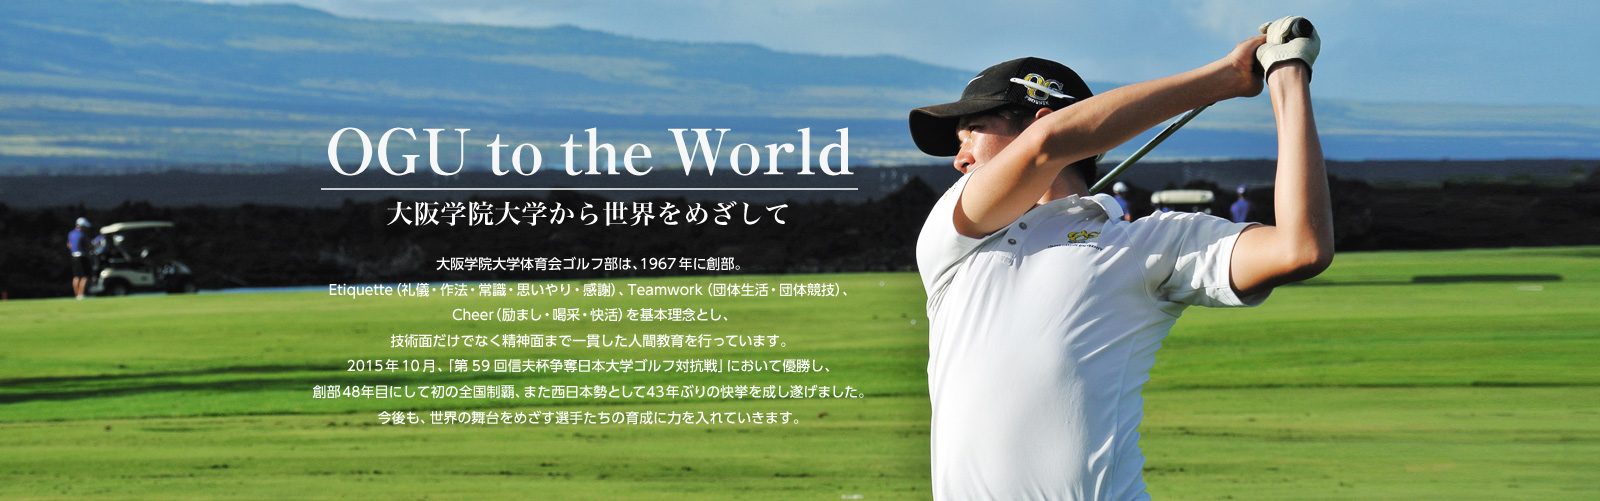 ゴルフ部 OGU to the World